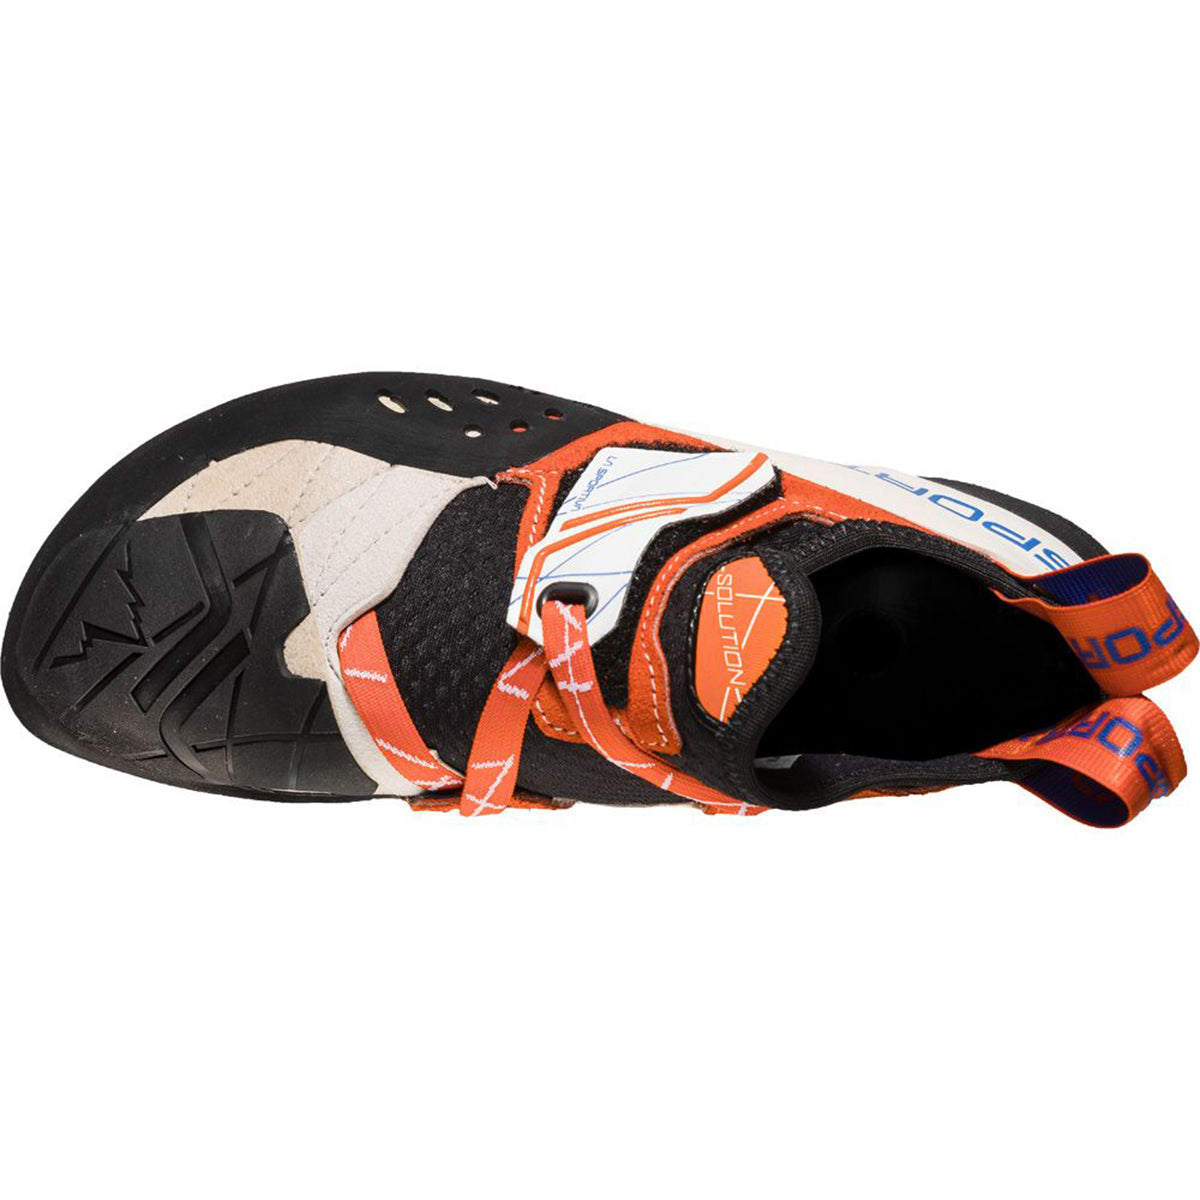 La Sportiva Solution Women's climbing shoe in a White Lilly colour as seen from above.